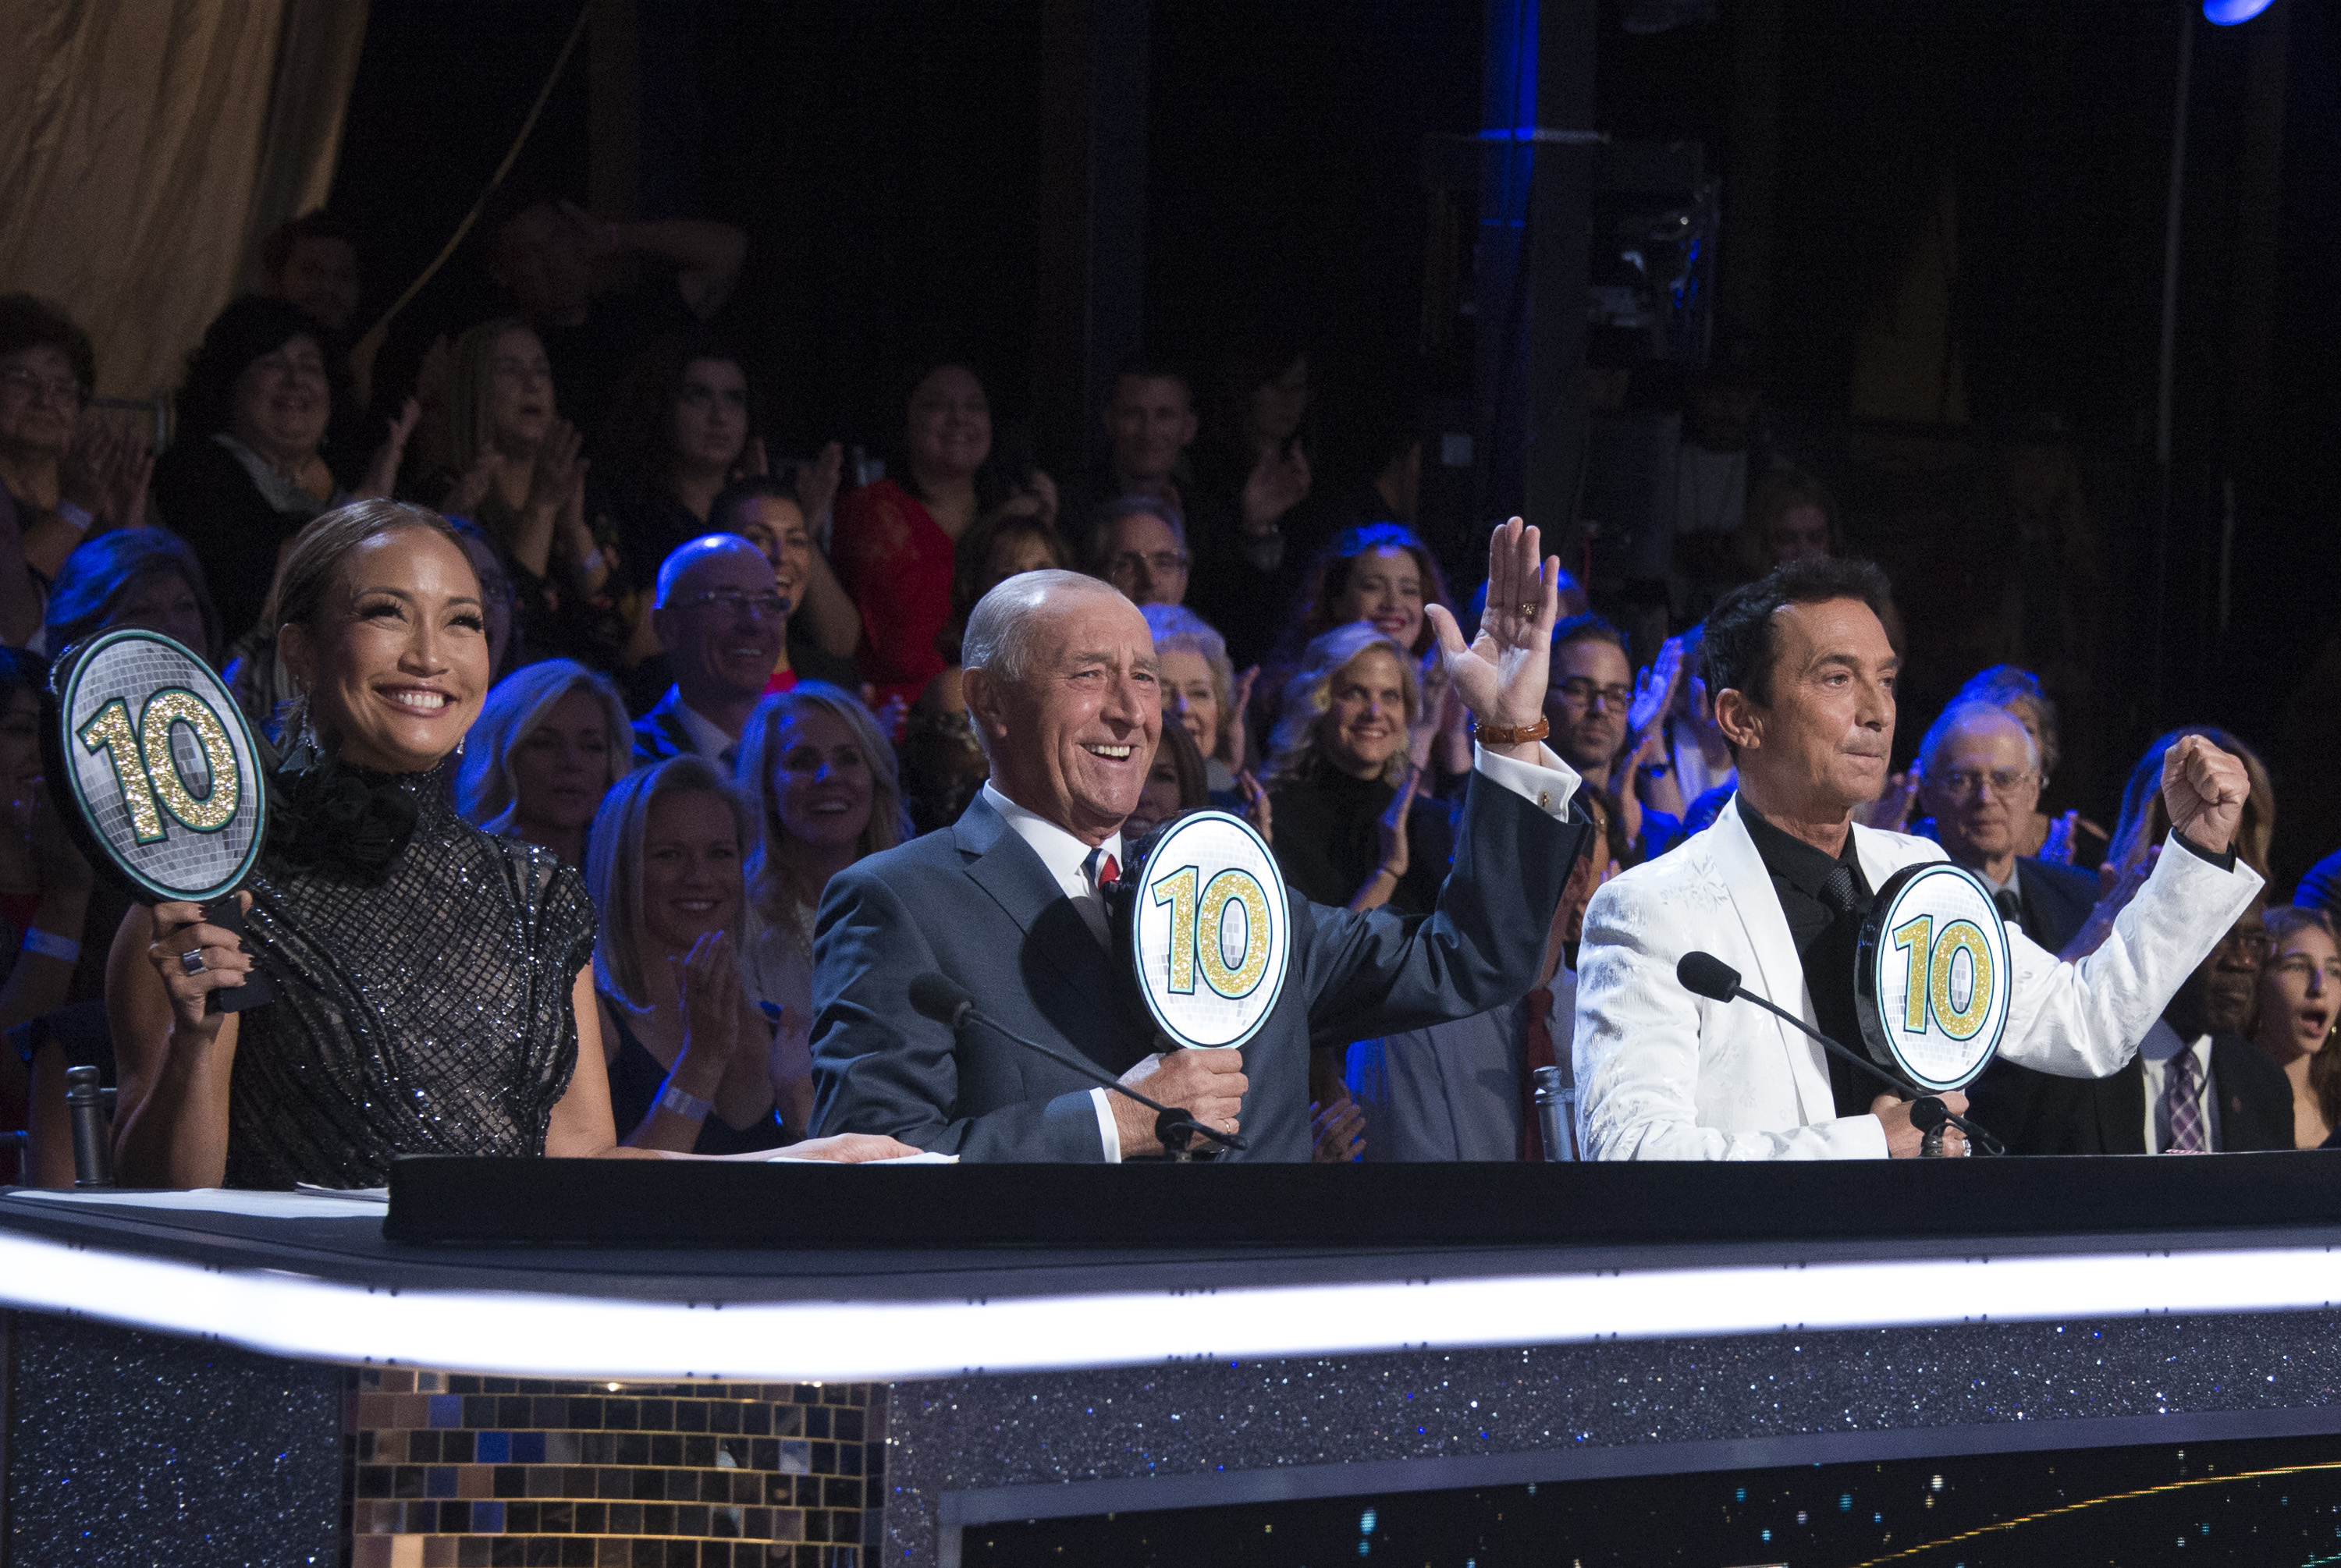 Publish the Numbers ABC! – Dancing With the Stars